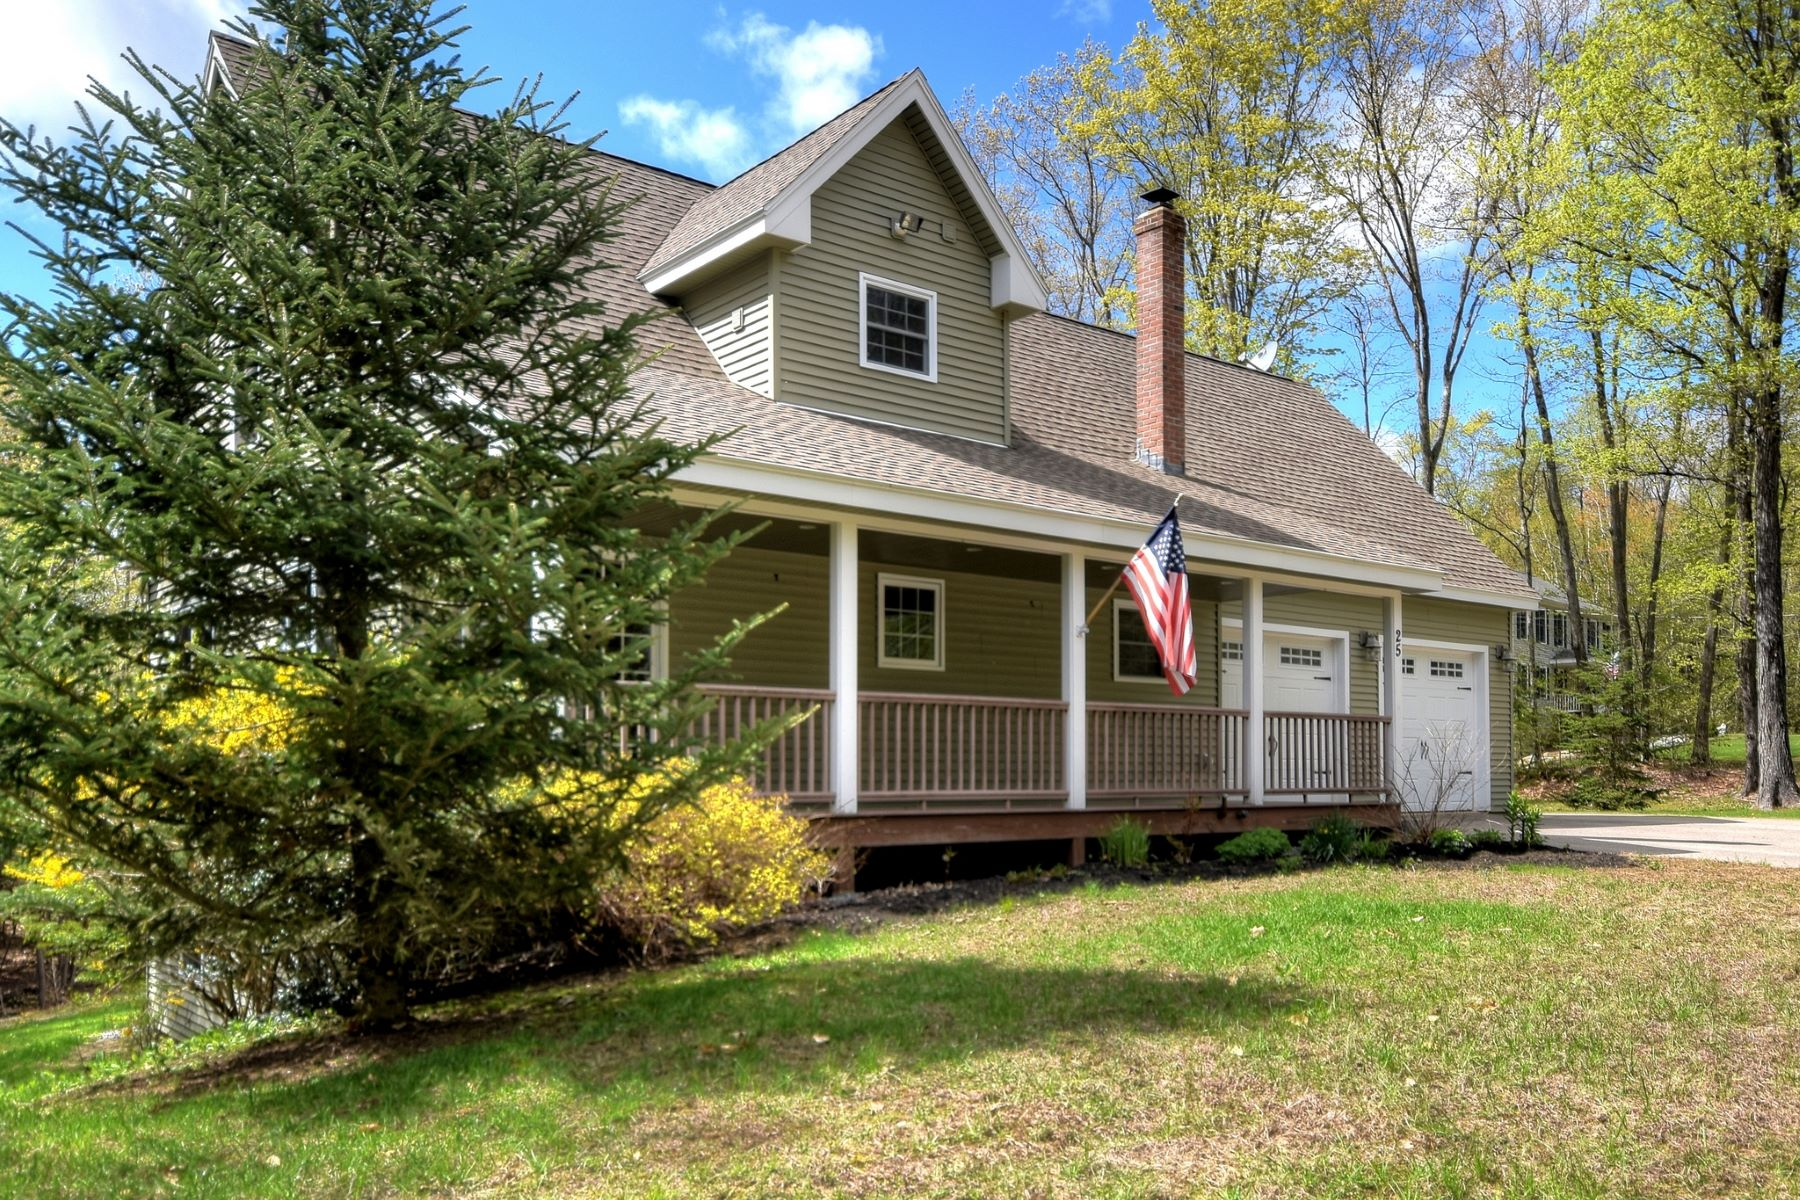 Single Family Home for Sale at 25 Canaan Rd, Gilmanton Gilmanton, New Hampshire, 03237 United States